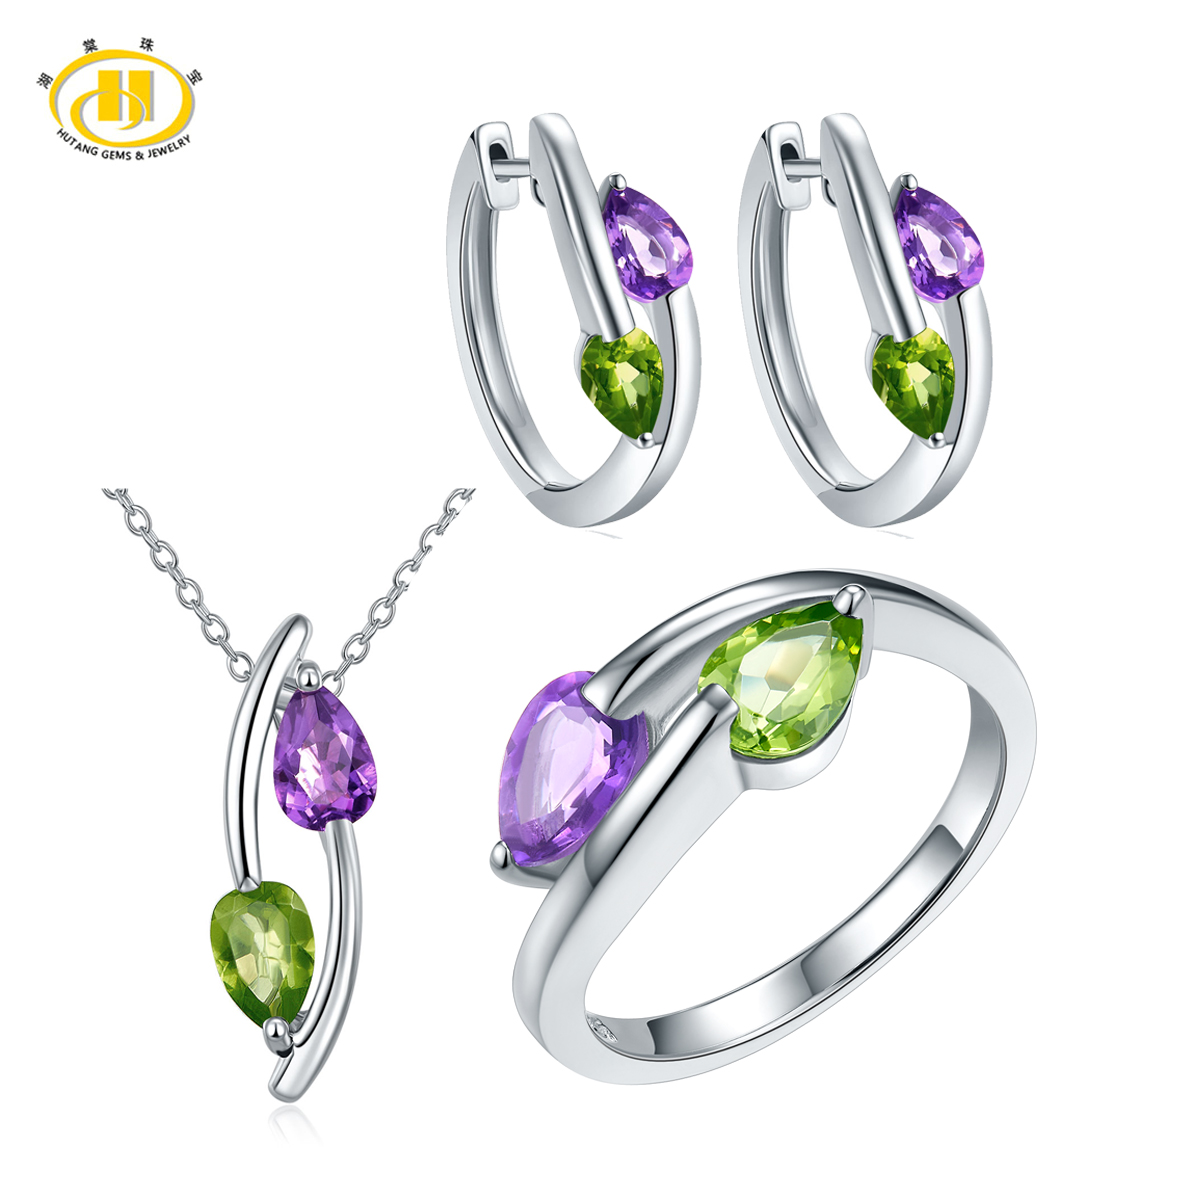 Hutang Natural Peridot & Amethyst Jewelry Sets For Women Solid 925 Sterling  Silver Gemstone Jewelry Pendant Ring Earrings 2017